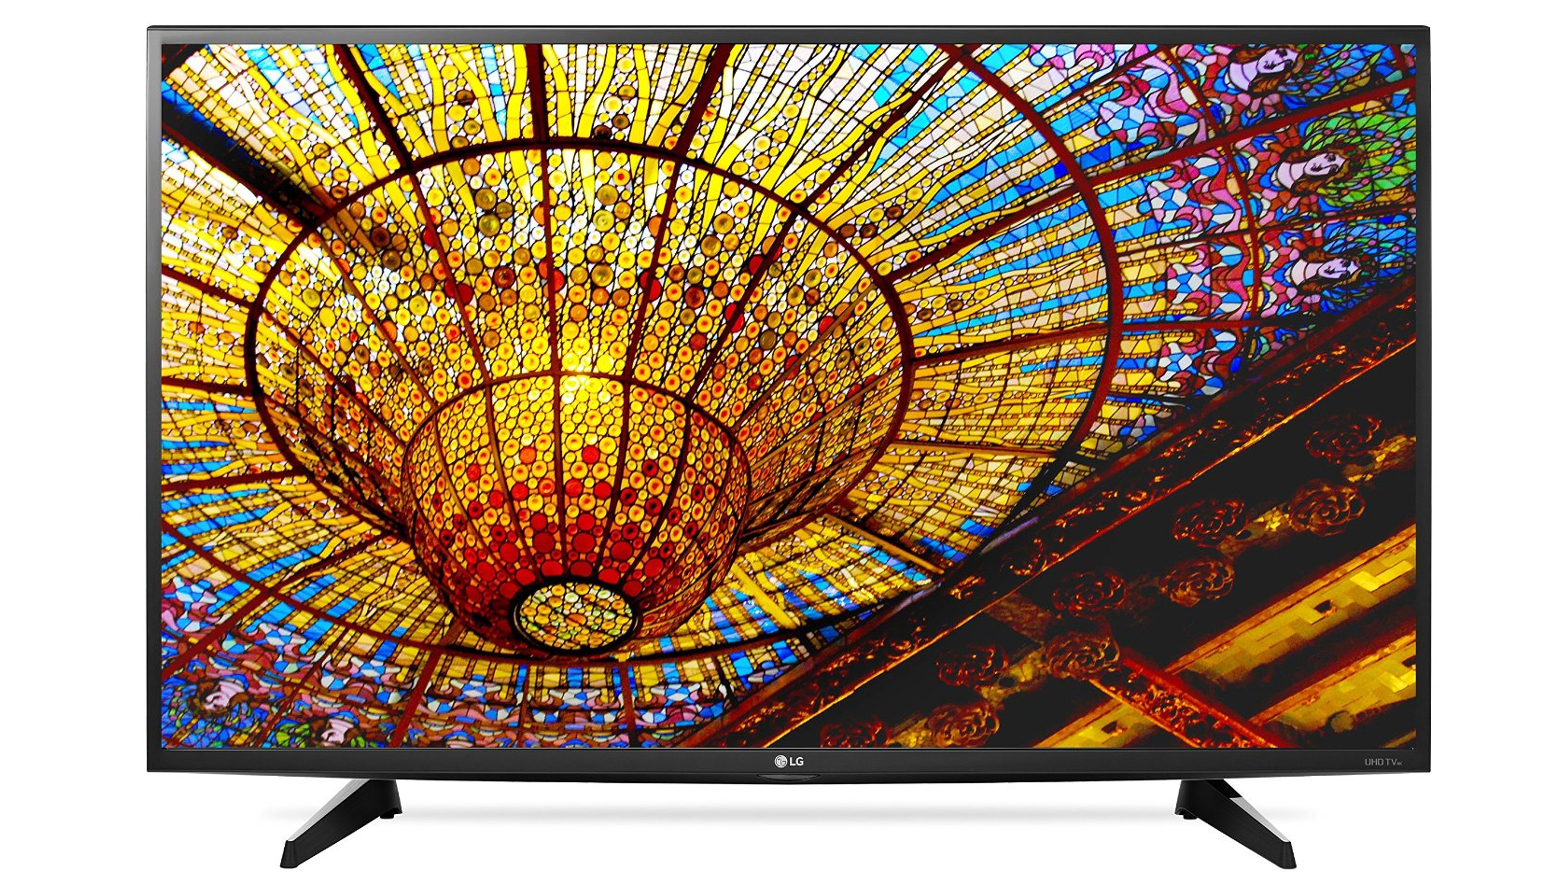 best 4k tv, 4k tv, uhd, top 10 uhd tv, highest rated 4k tv, 4k tv reviews, best 4k tv deals, 43 inch tv, best 43 inch tv